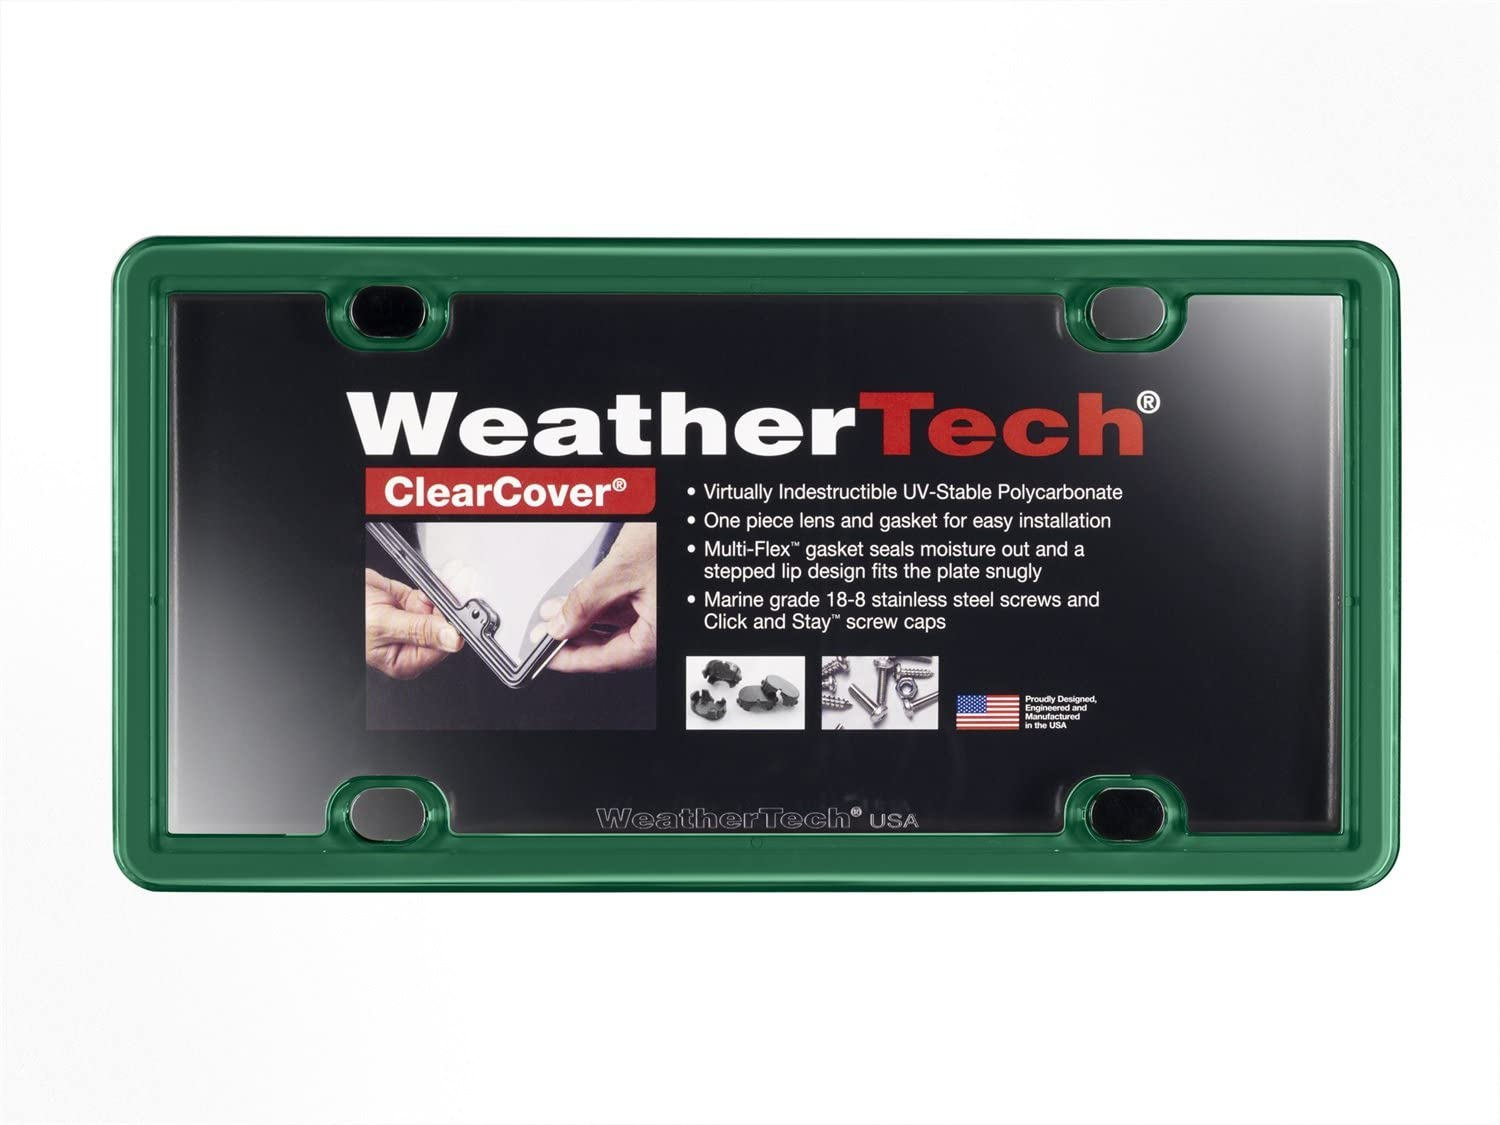 weathertech license plate frame